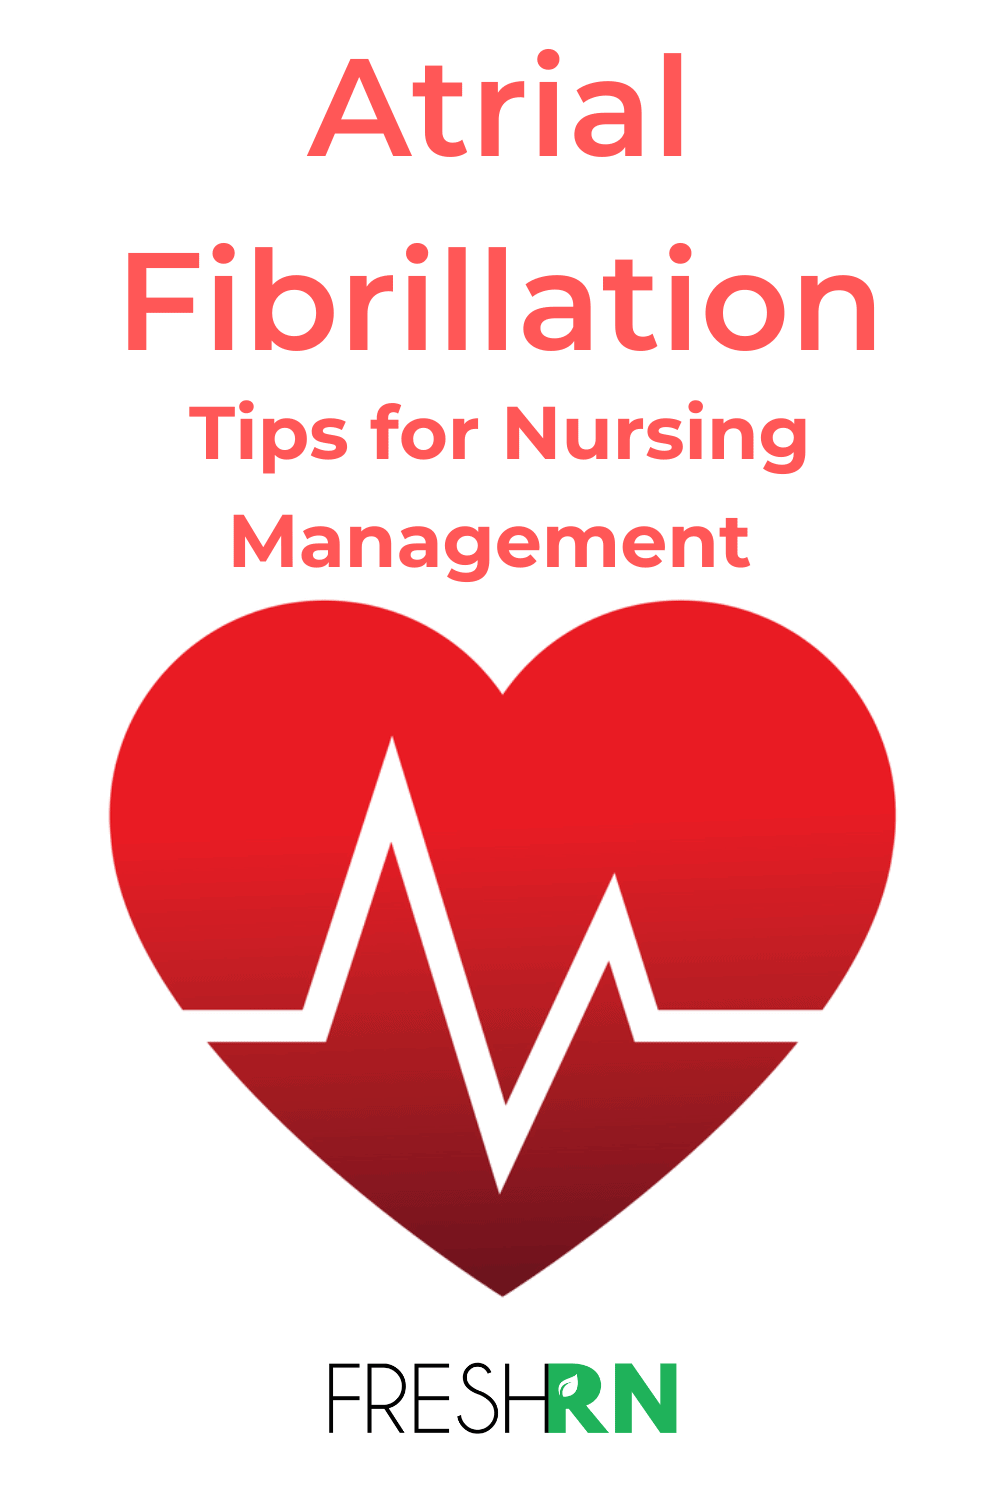 Nursing Management of Atrial Fibrillation. New Nurses need to know the basis around nursing management of atrial fibrillation. #freshrn #cardiac #afib #atrialfibrillation #cardiacnurse #nursetips